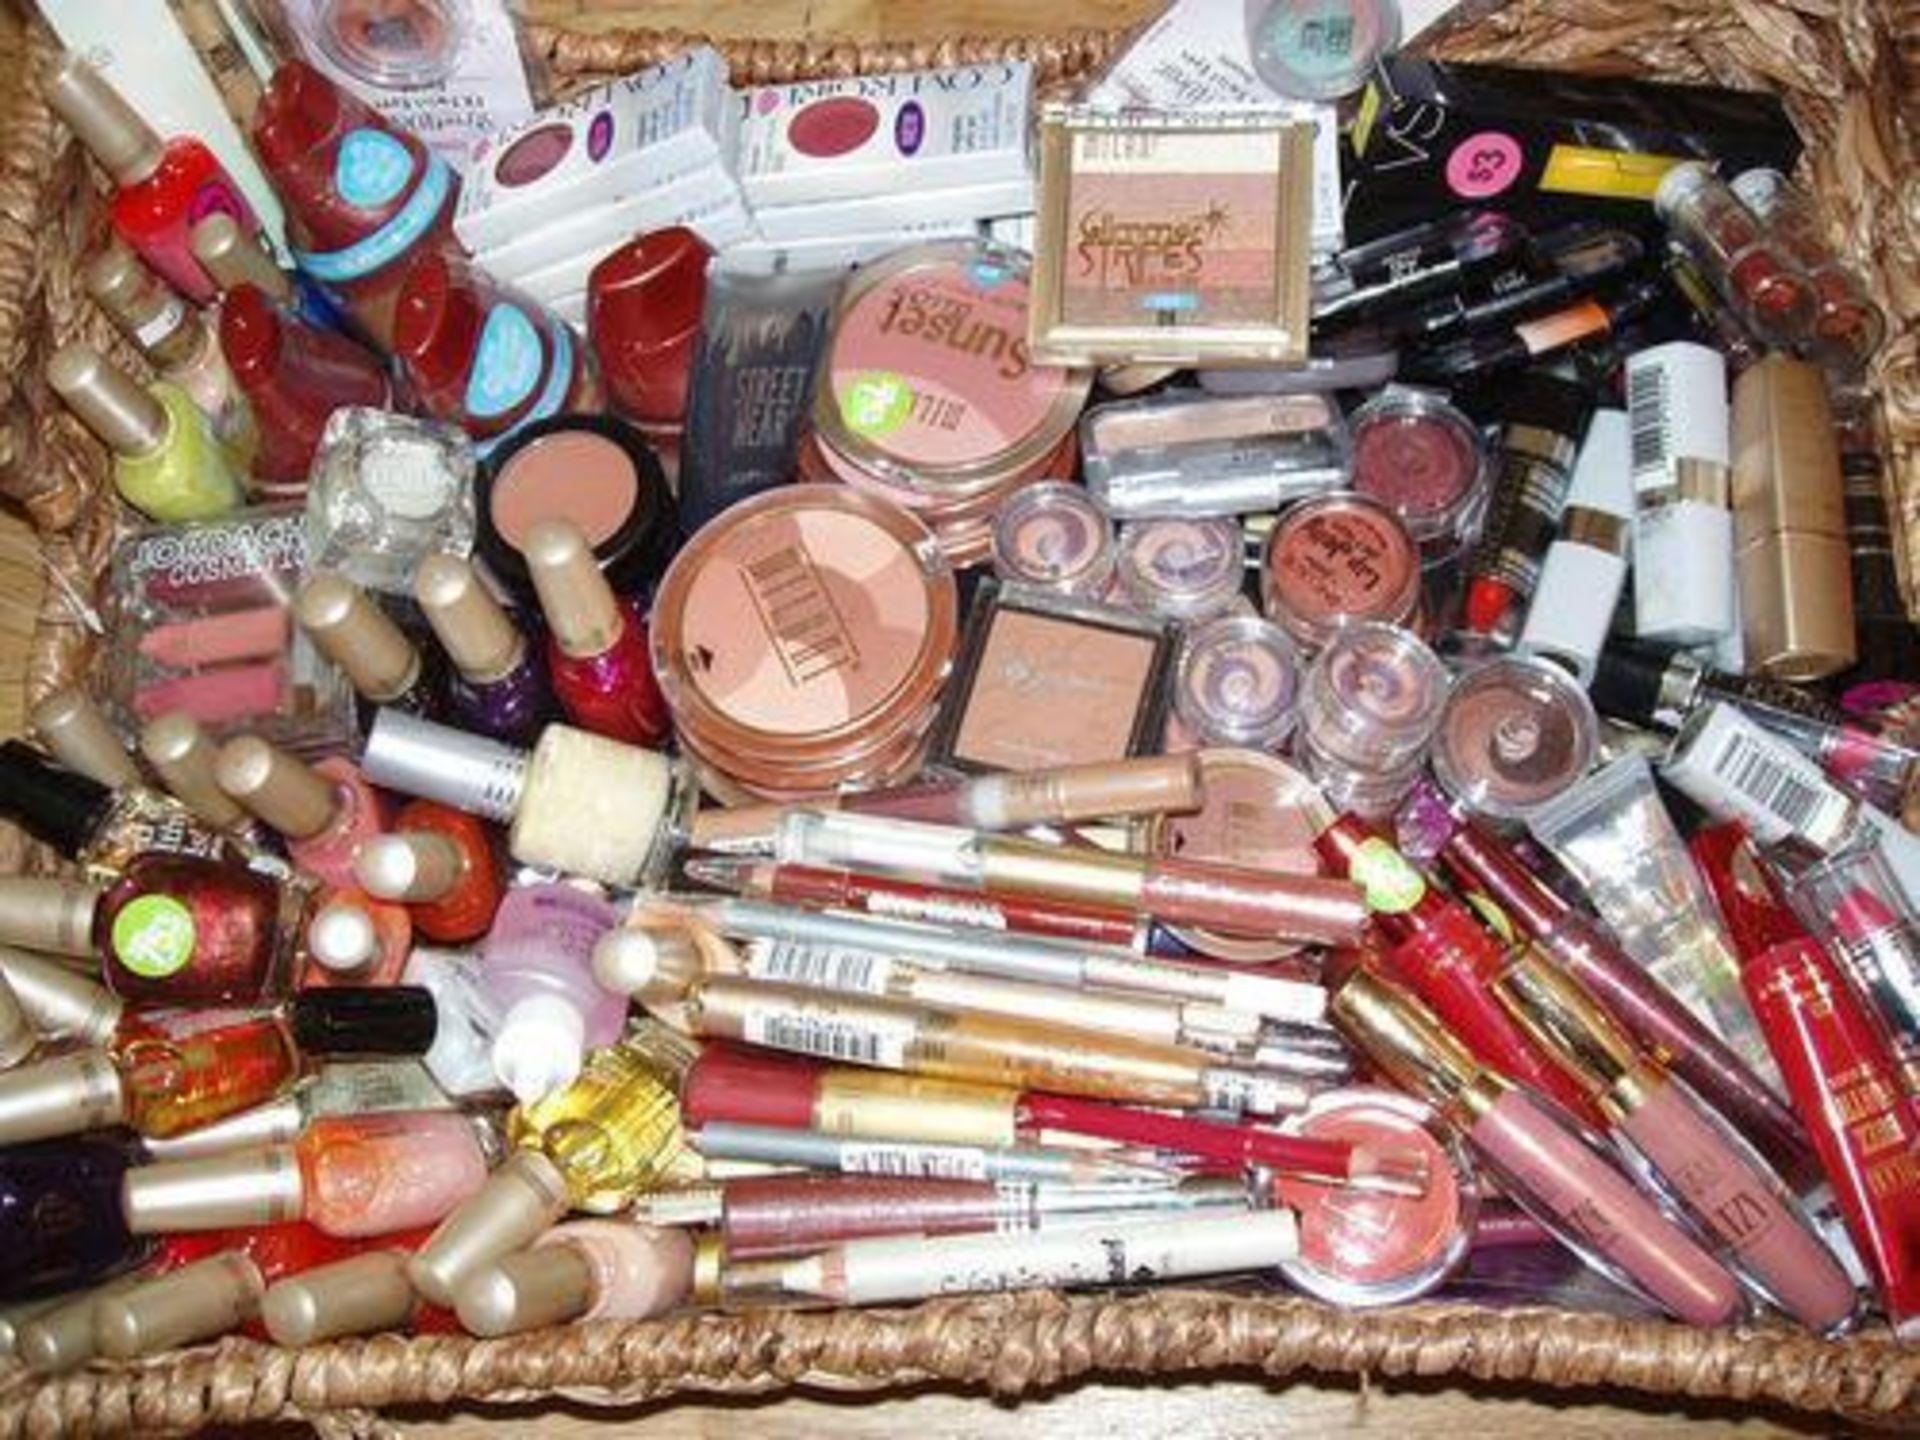 Lot 18 - 1000 x Branded Cosmetics – Full Size Testers – Mixed BrandsAll items brand new, unused and full size